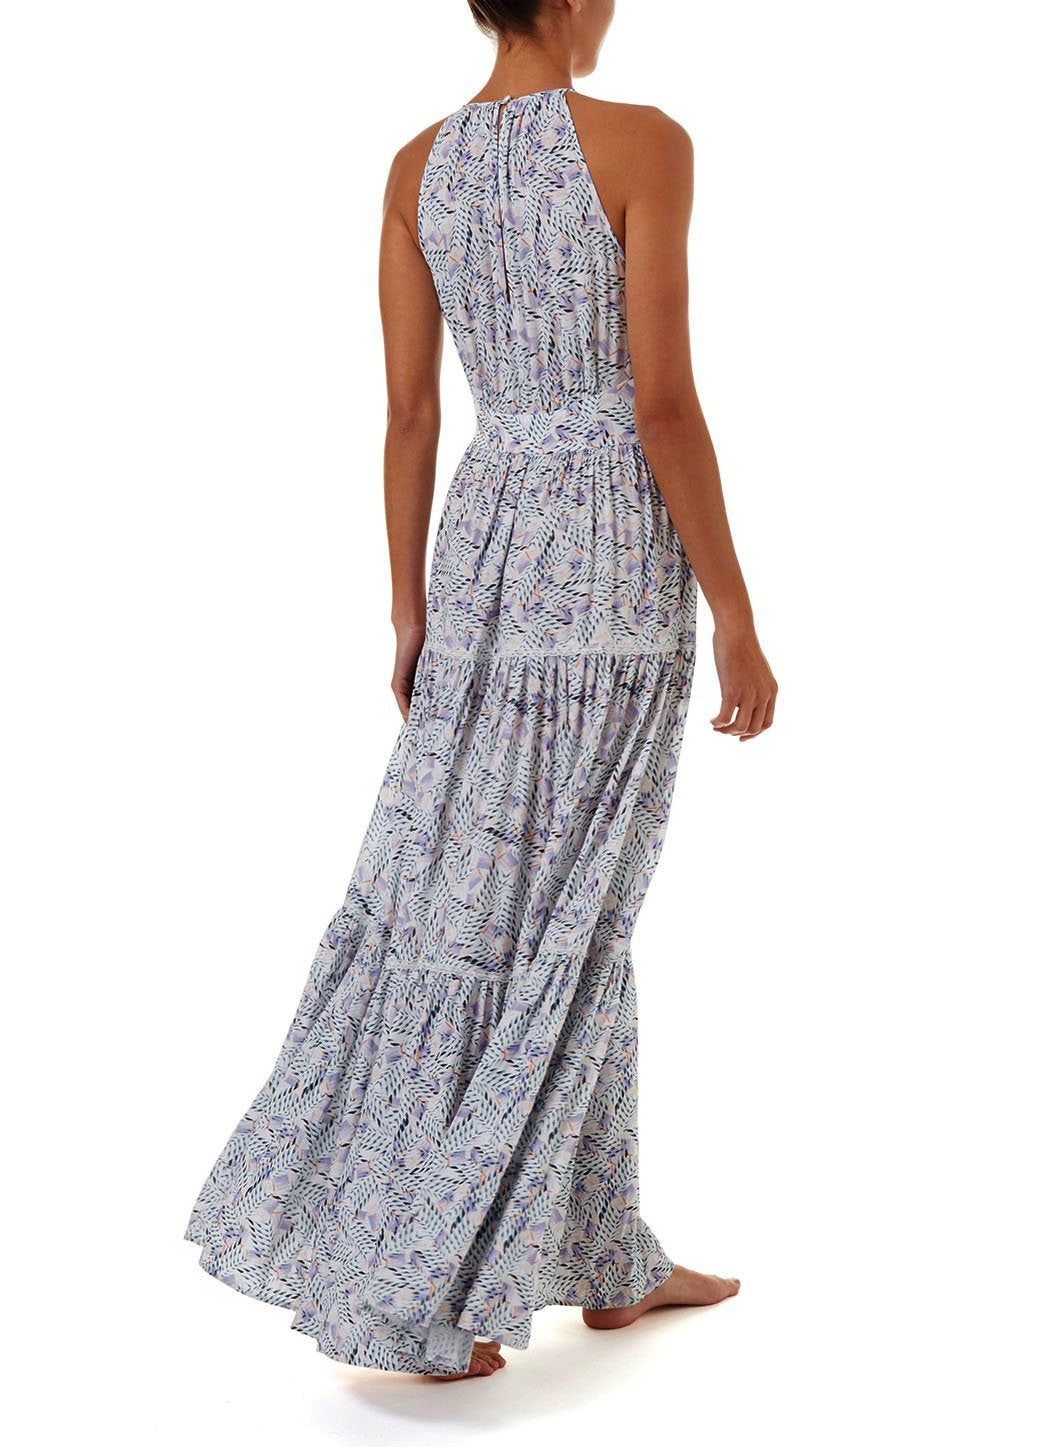 isadora azari high neck maxi dress 2019 B